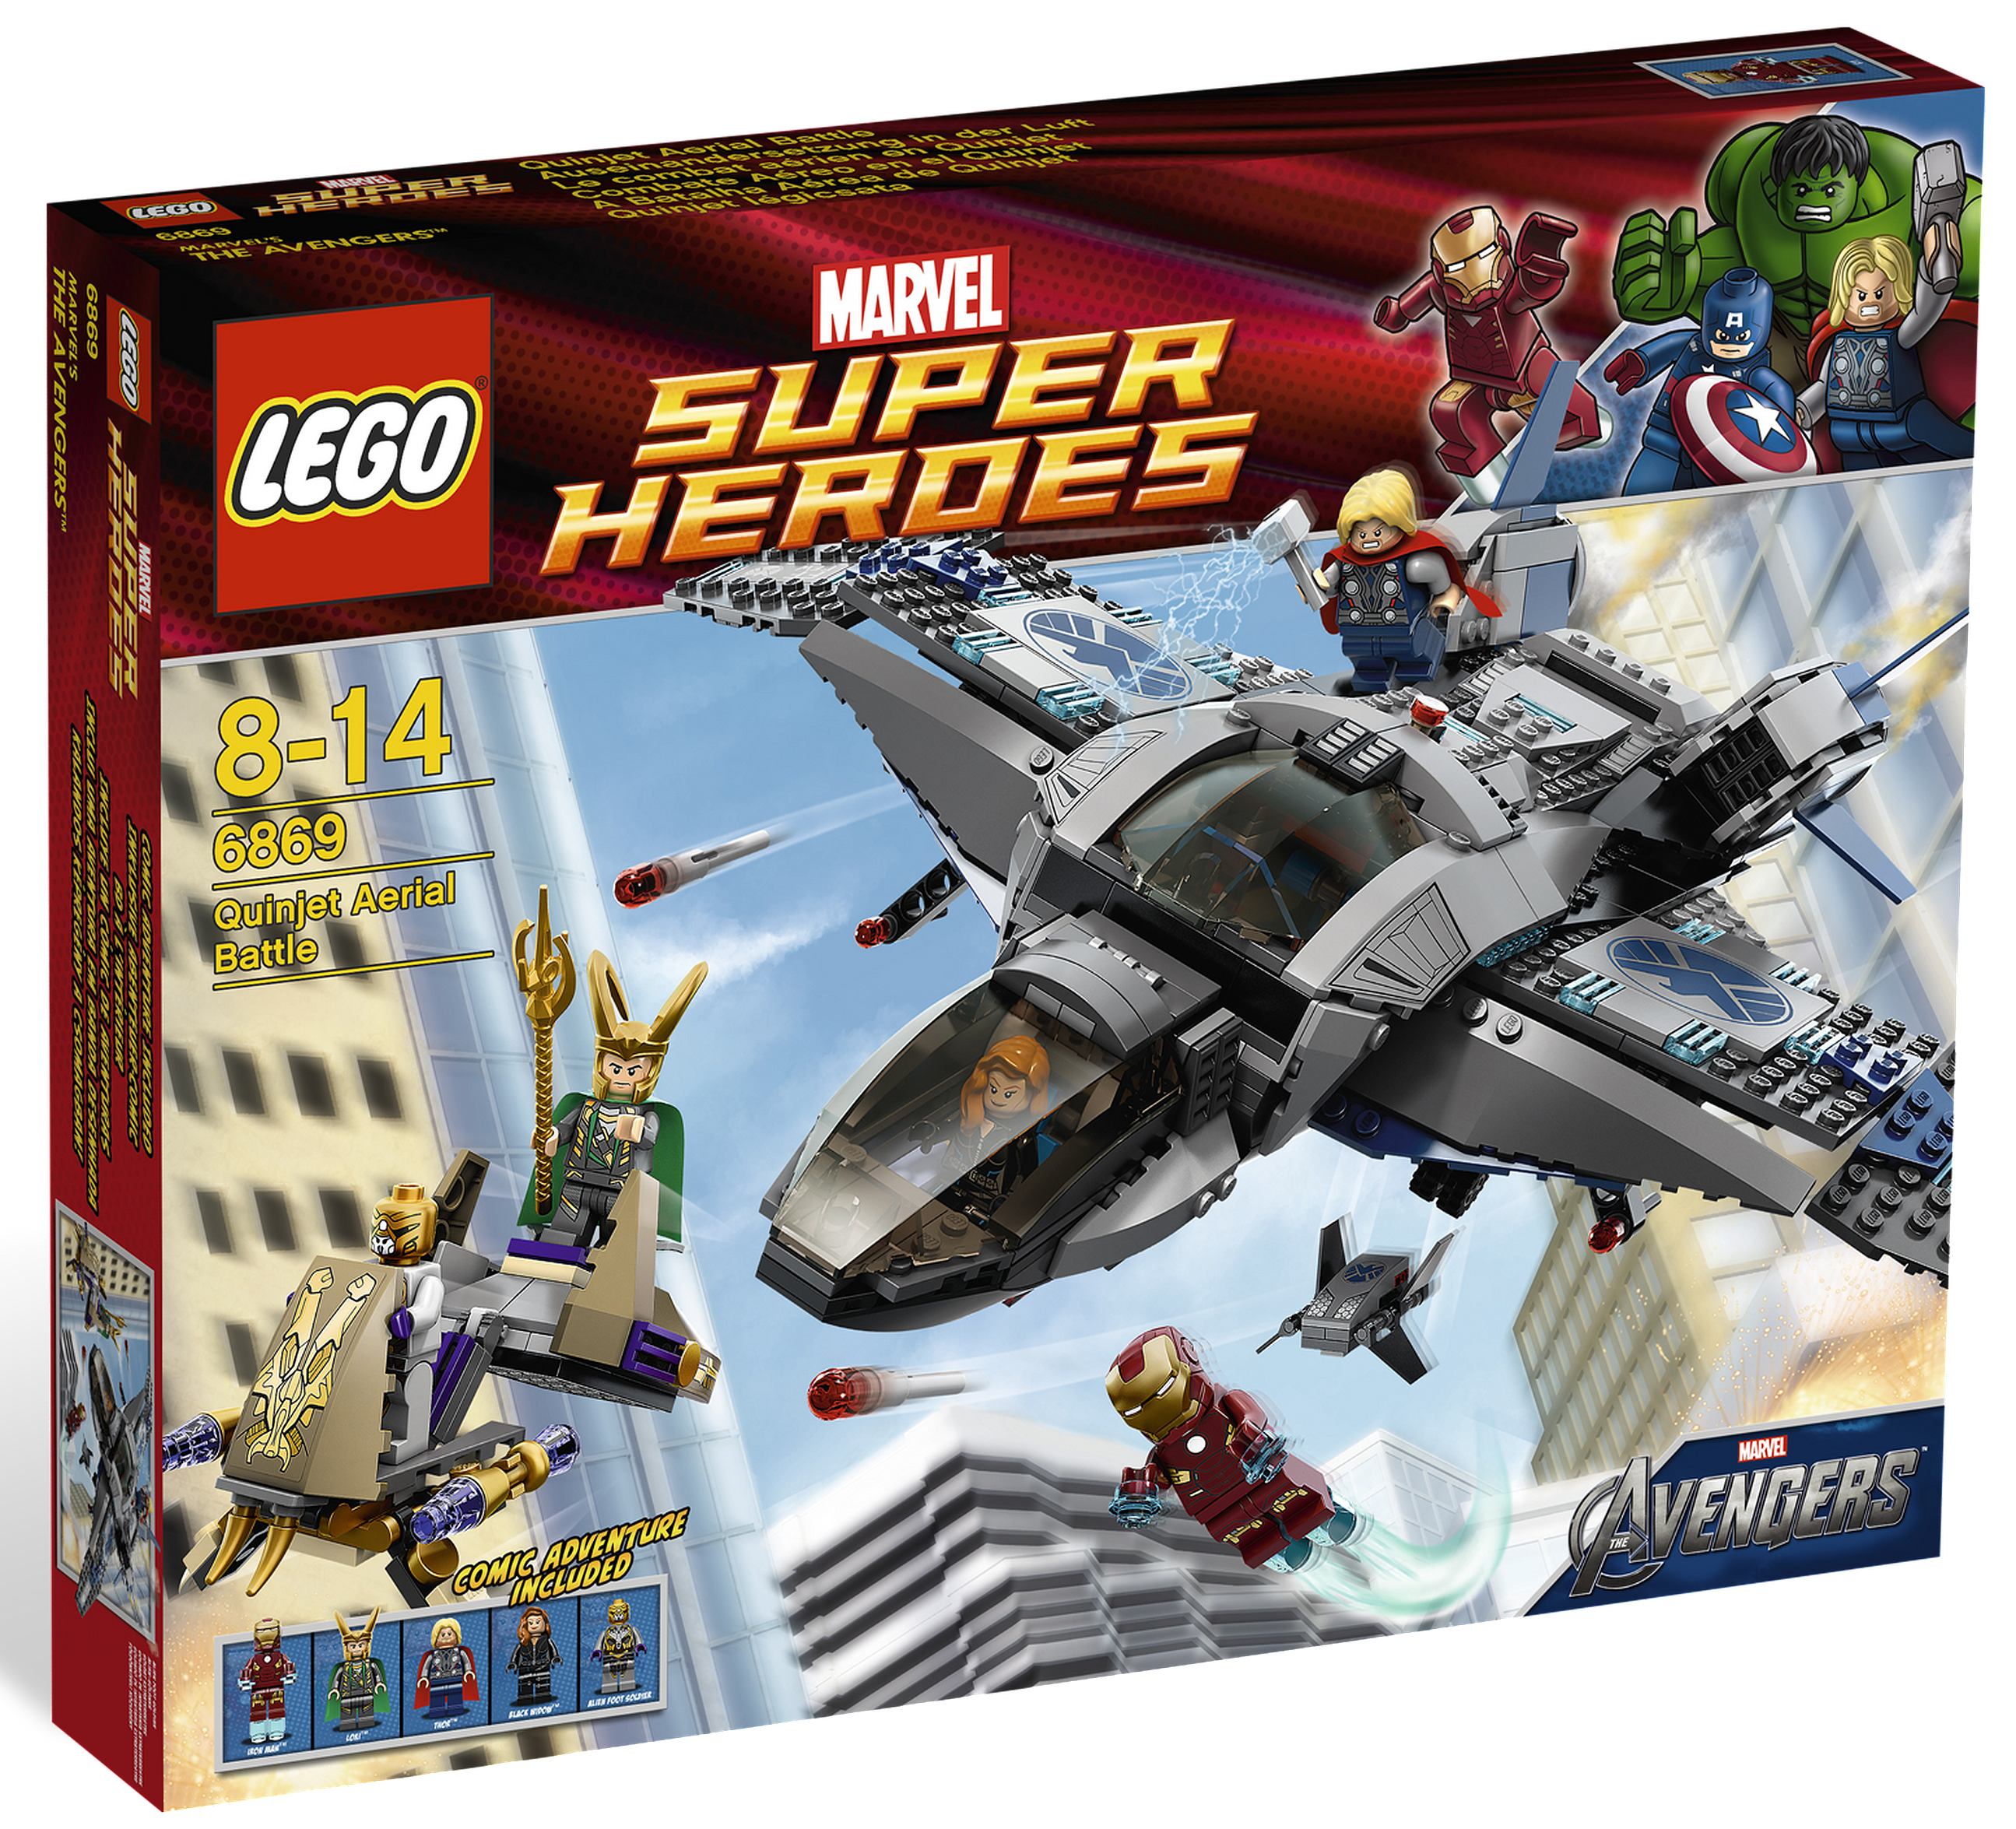 Quinjet Aerial Battle Item №: Defeat Loki and his forces with the super fast Quinjet! LEGO Marvel Super Heroes Minifigures: Alien Foot Soldier, Black Widow, Iron Man (Mark VII), Loki, Thor.